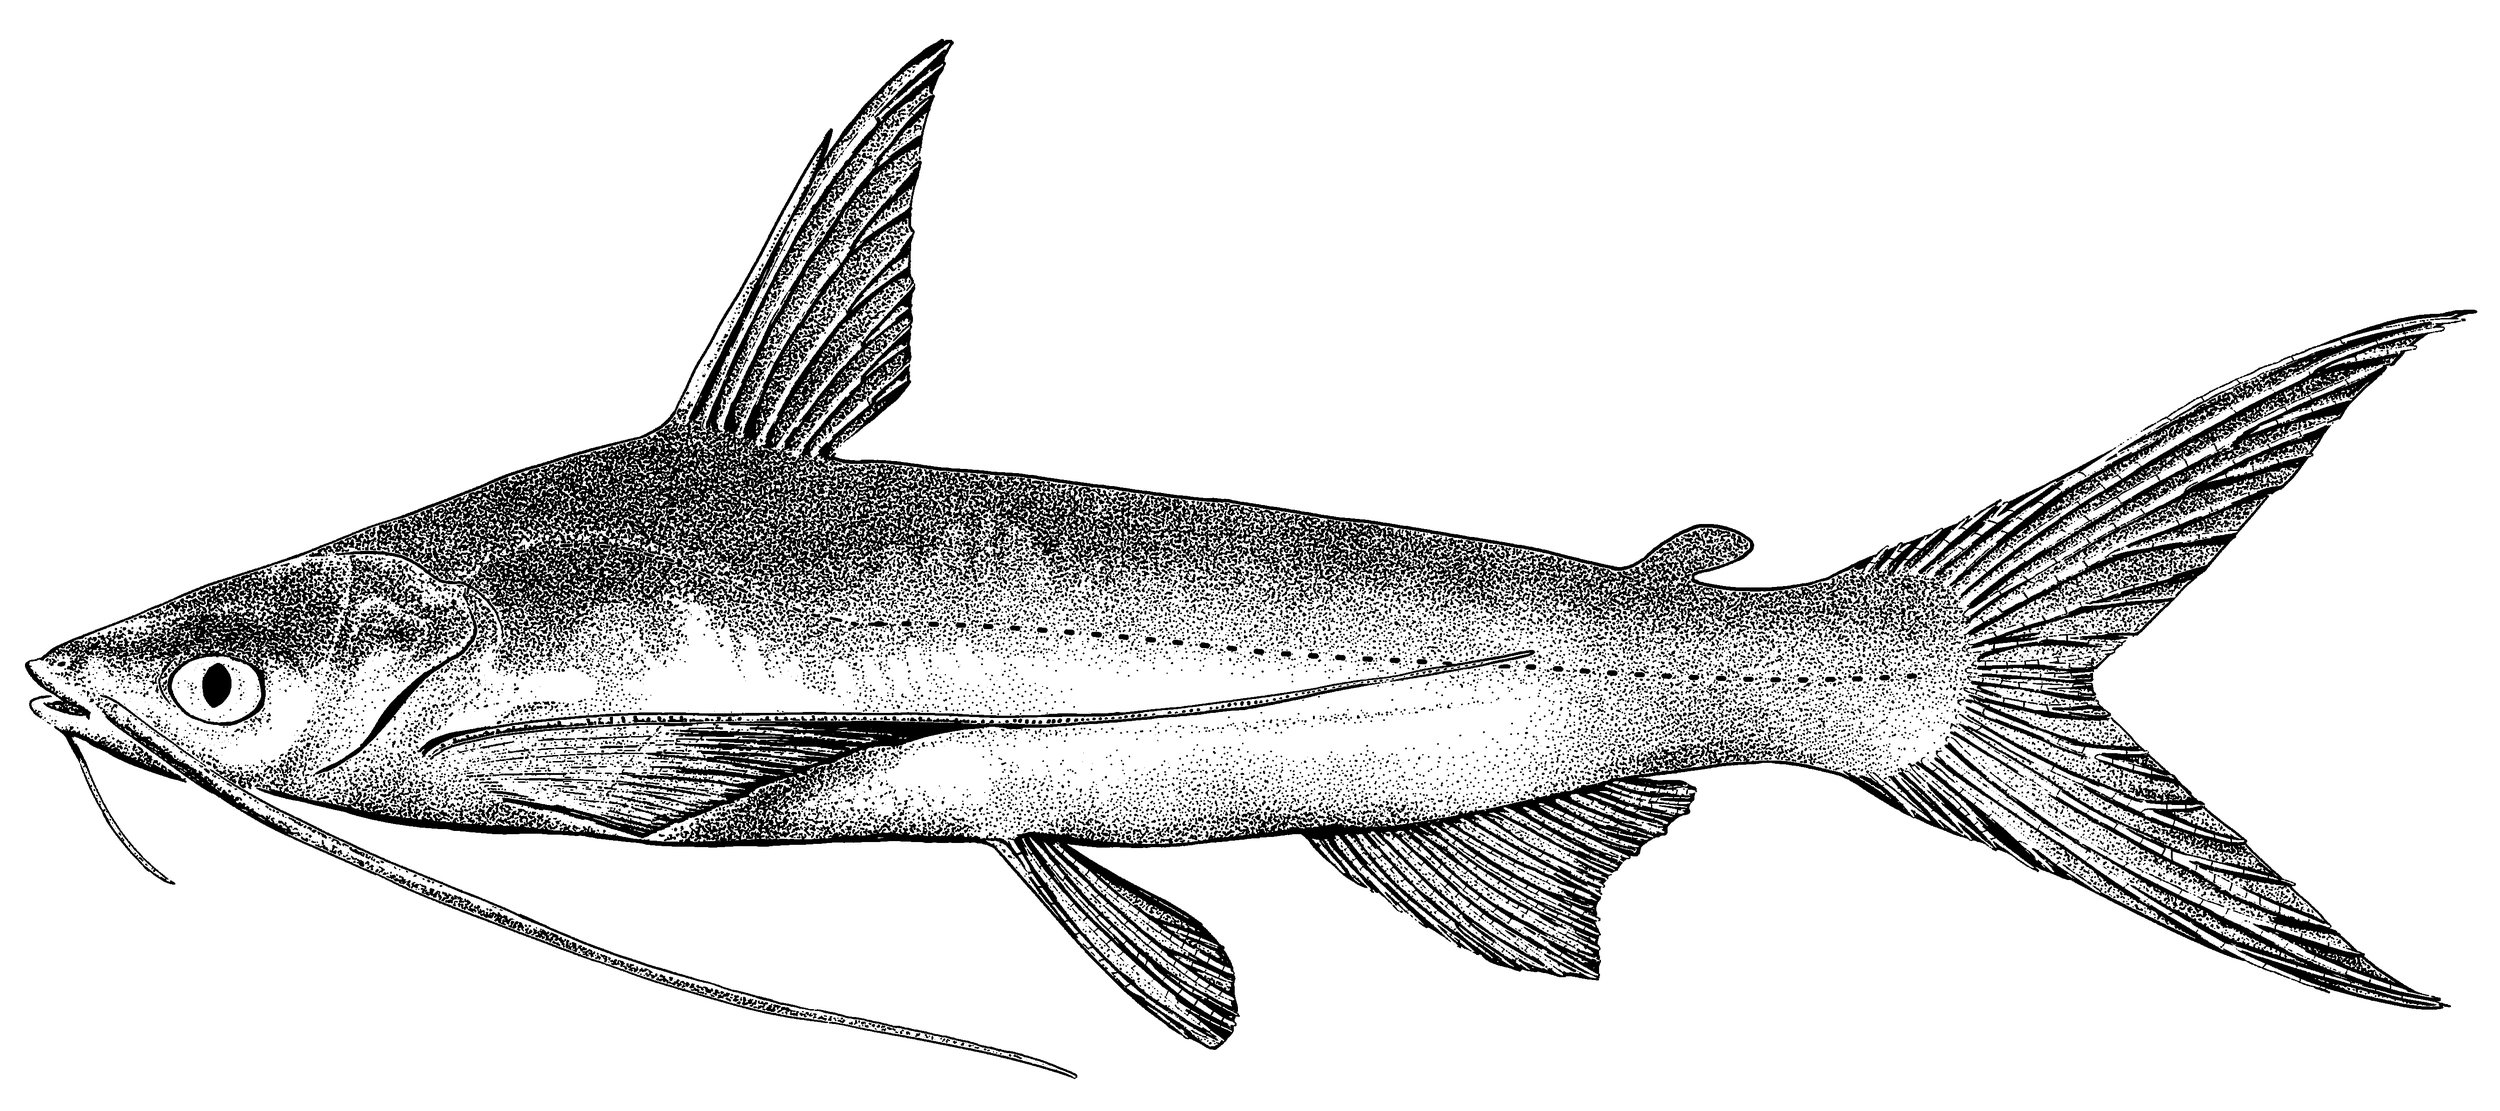 CHIHUIL–Ink on paper. Illustration of  Bagre panamensi s, a catfish.